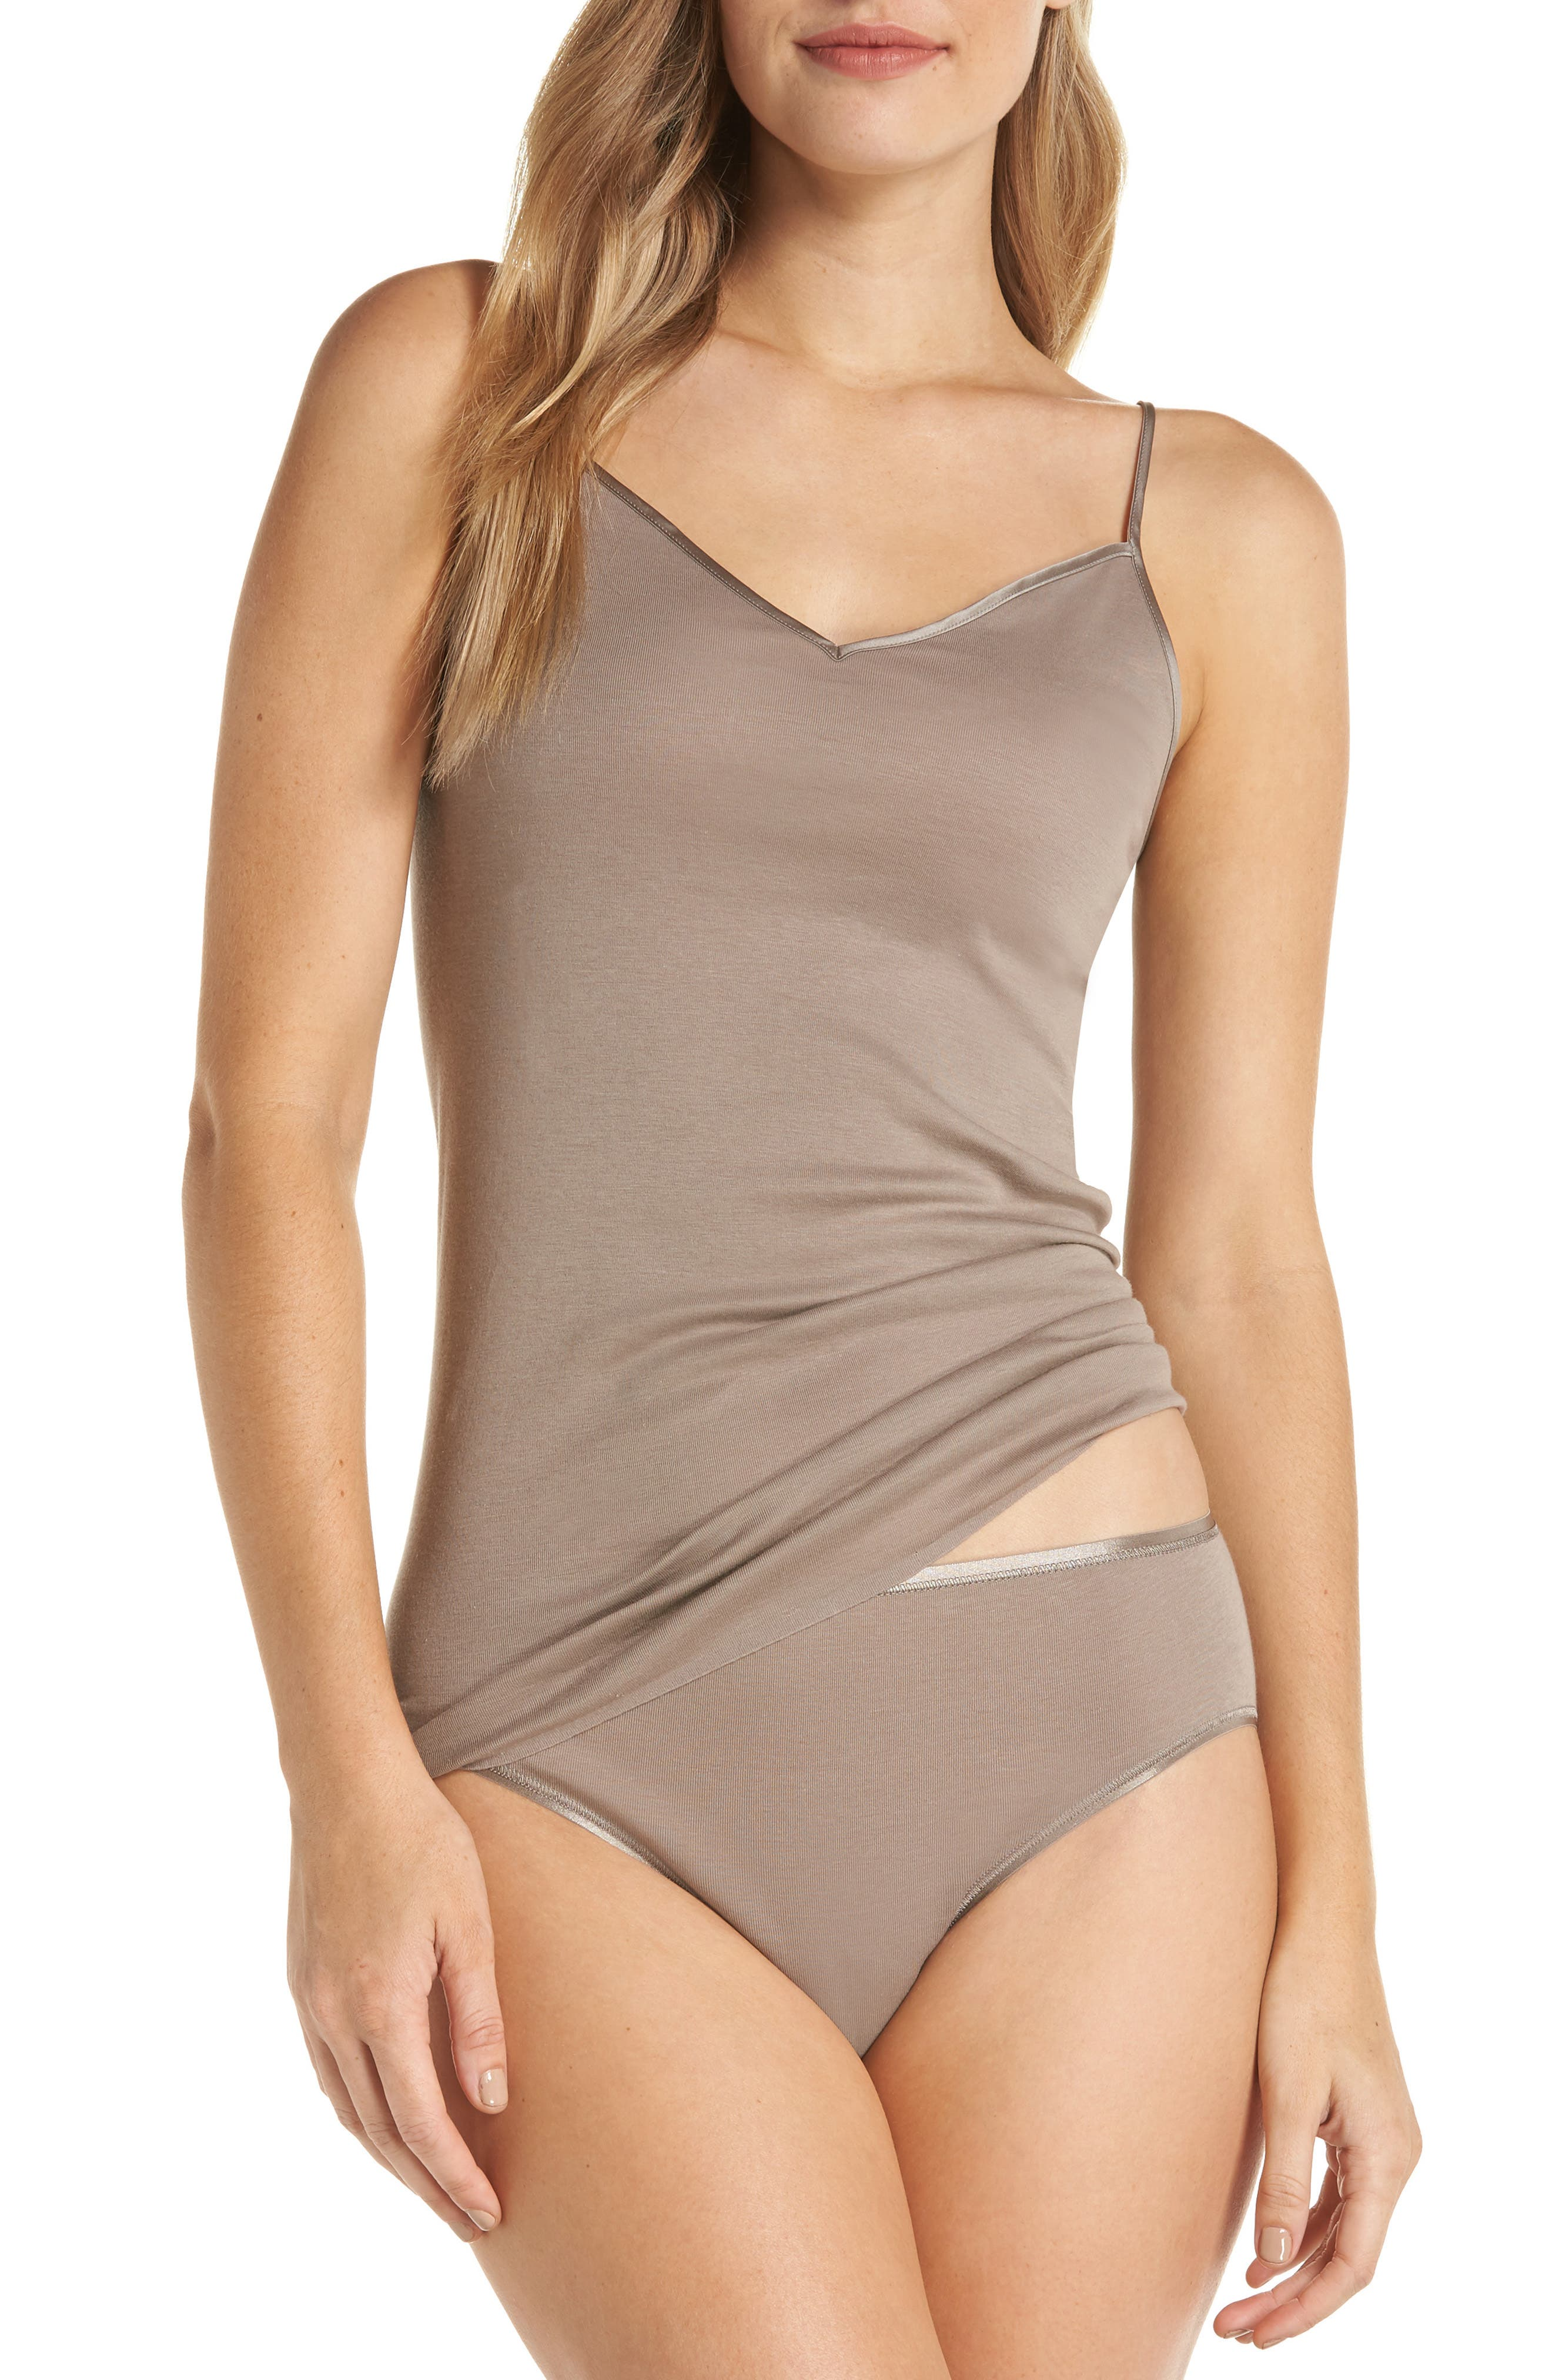 HANRO,                             Seamless V-Neck Cotton Camisole,                             Alternate thumbnail 7, color,                             VINTAGE TAUPE 1871